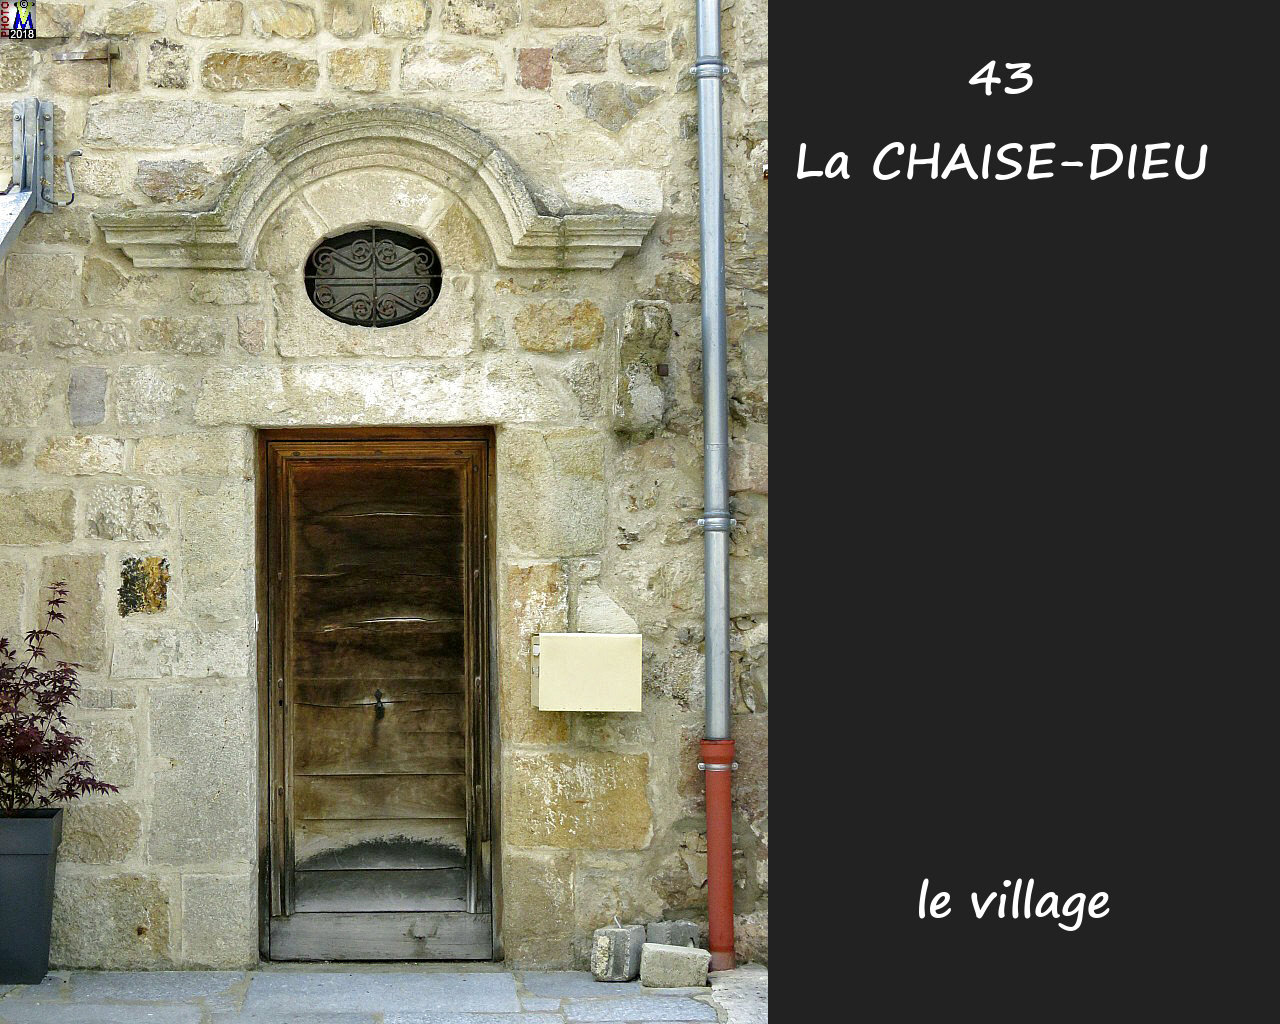 43CHAISE-DIEU_village_156.jpg